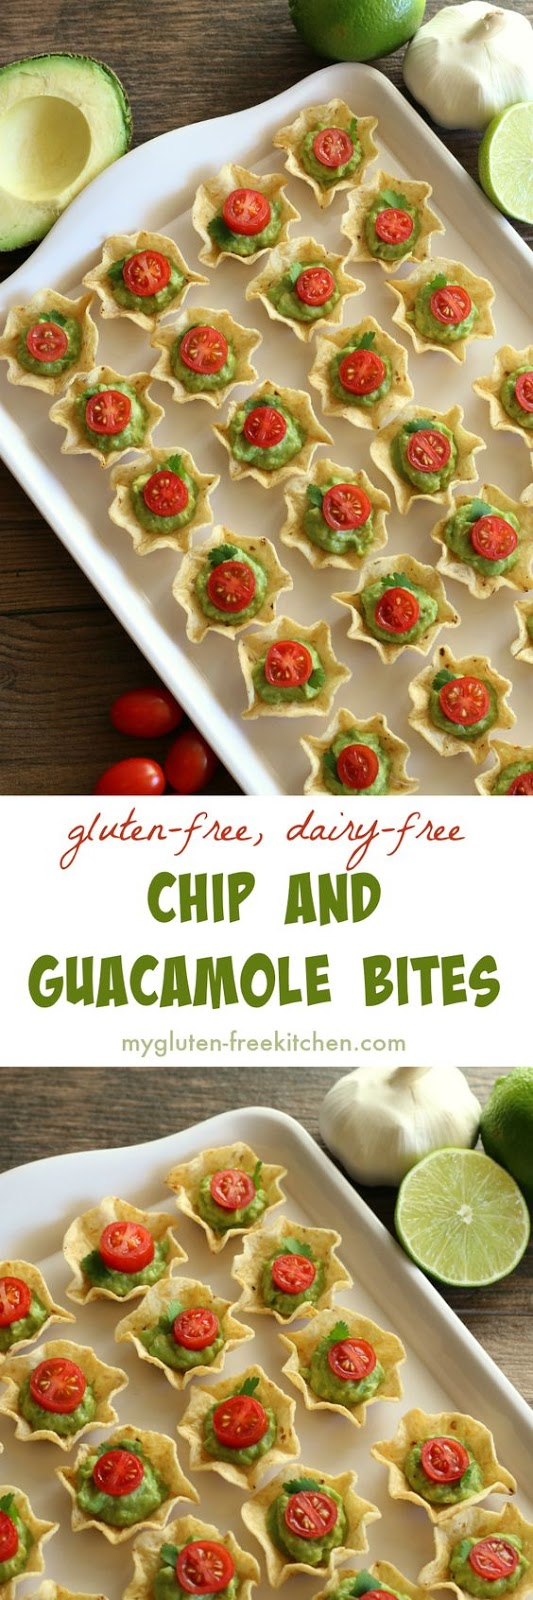 ★★★★☆ 7561 ratings  GLUTEN-FREE CHIP AND GUACAMOLE BITES #HEALTHYFOOD #EASYRECIPES #DINNER #LAUCH #DELICIOUS #EASY #HOLIDAYS #RECIPE #GLUTEN #FREE #CHIP #GUACAMOLE #BITES